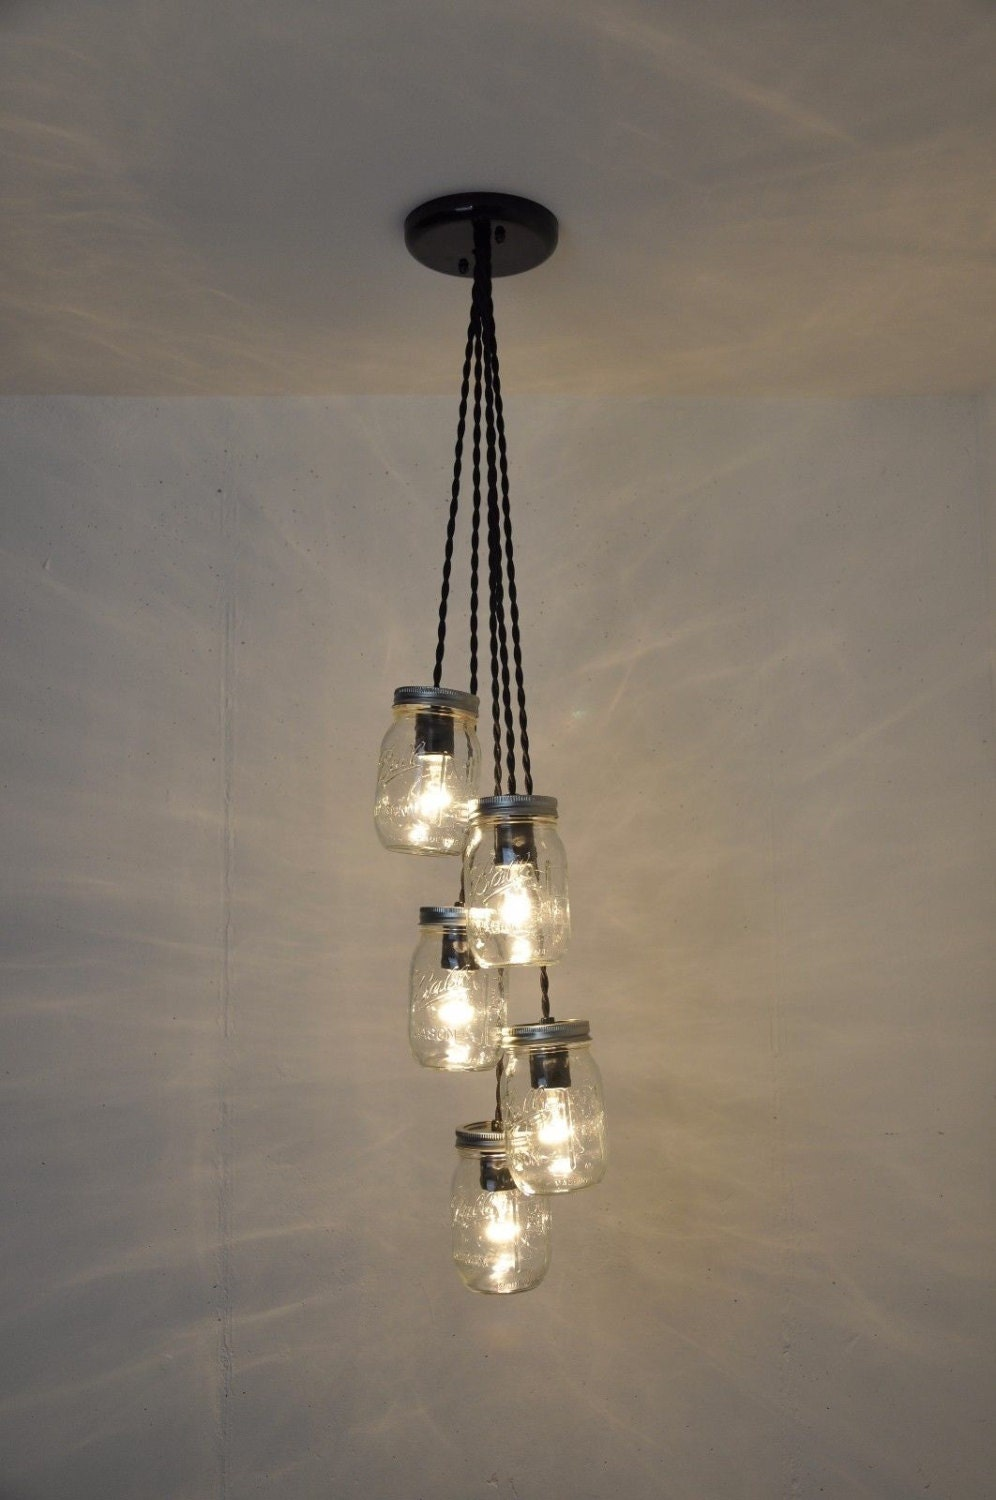 jar lighting fixtures. Mason Jar Chandelier - Light Fixture Ball Ceiling Pendant Plug In Hanging Lighting Fixtures